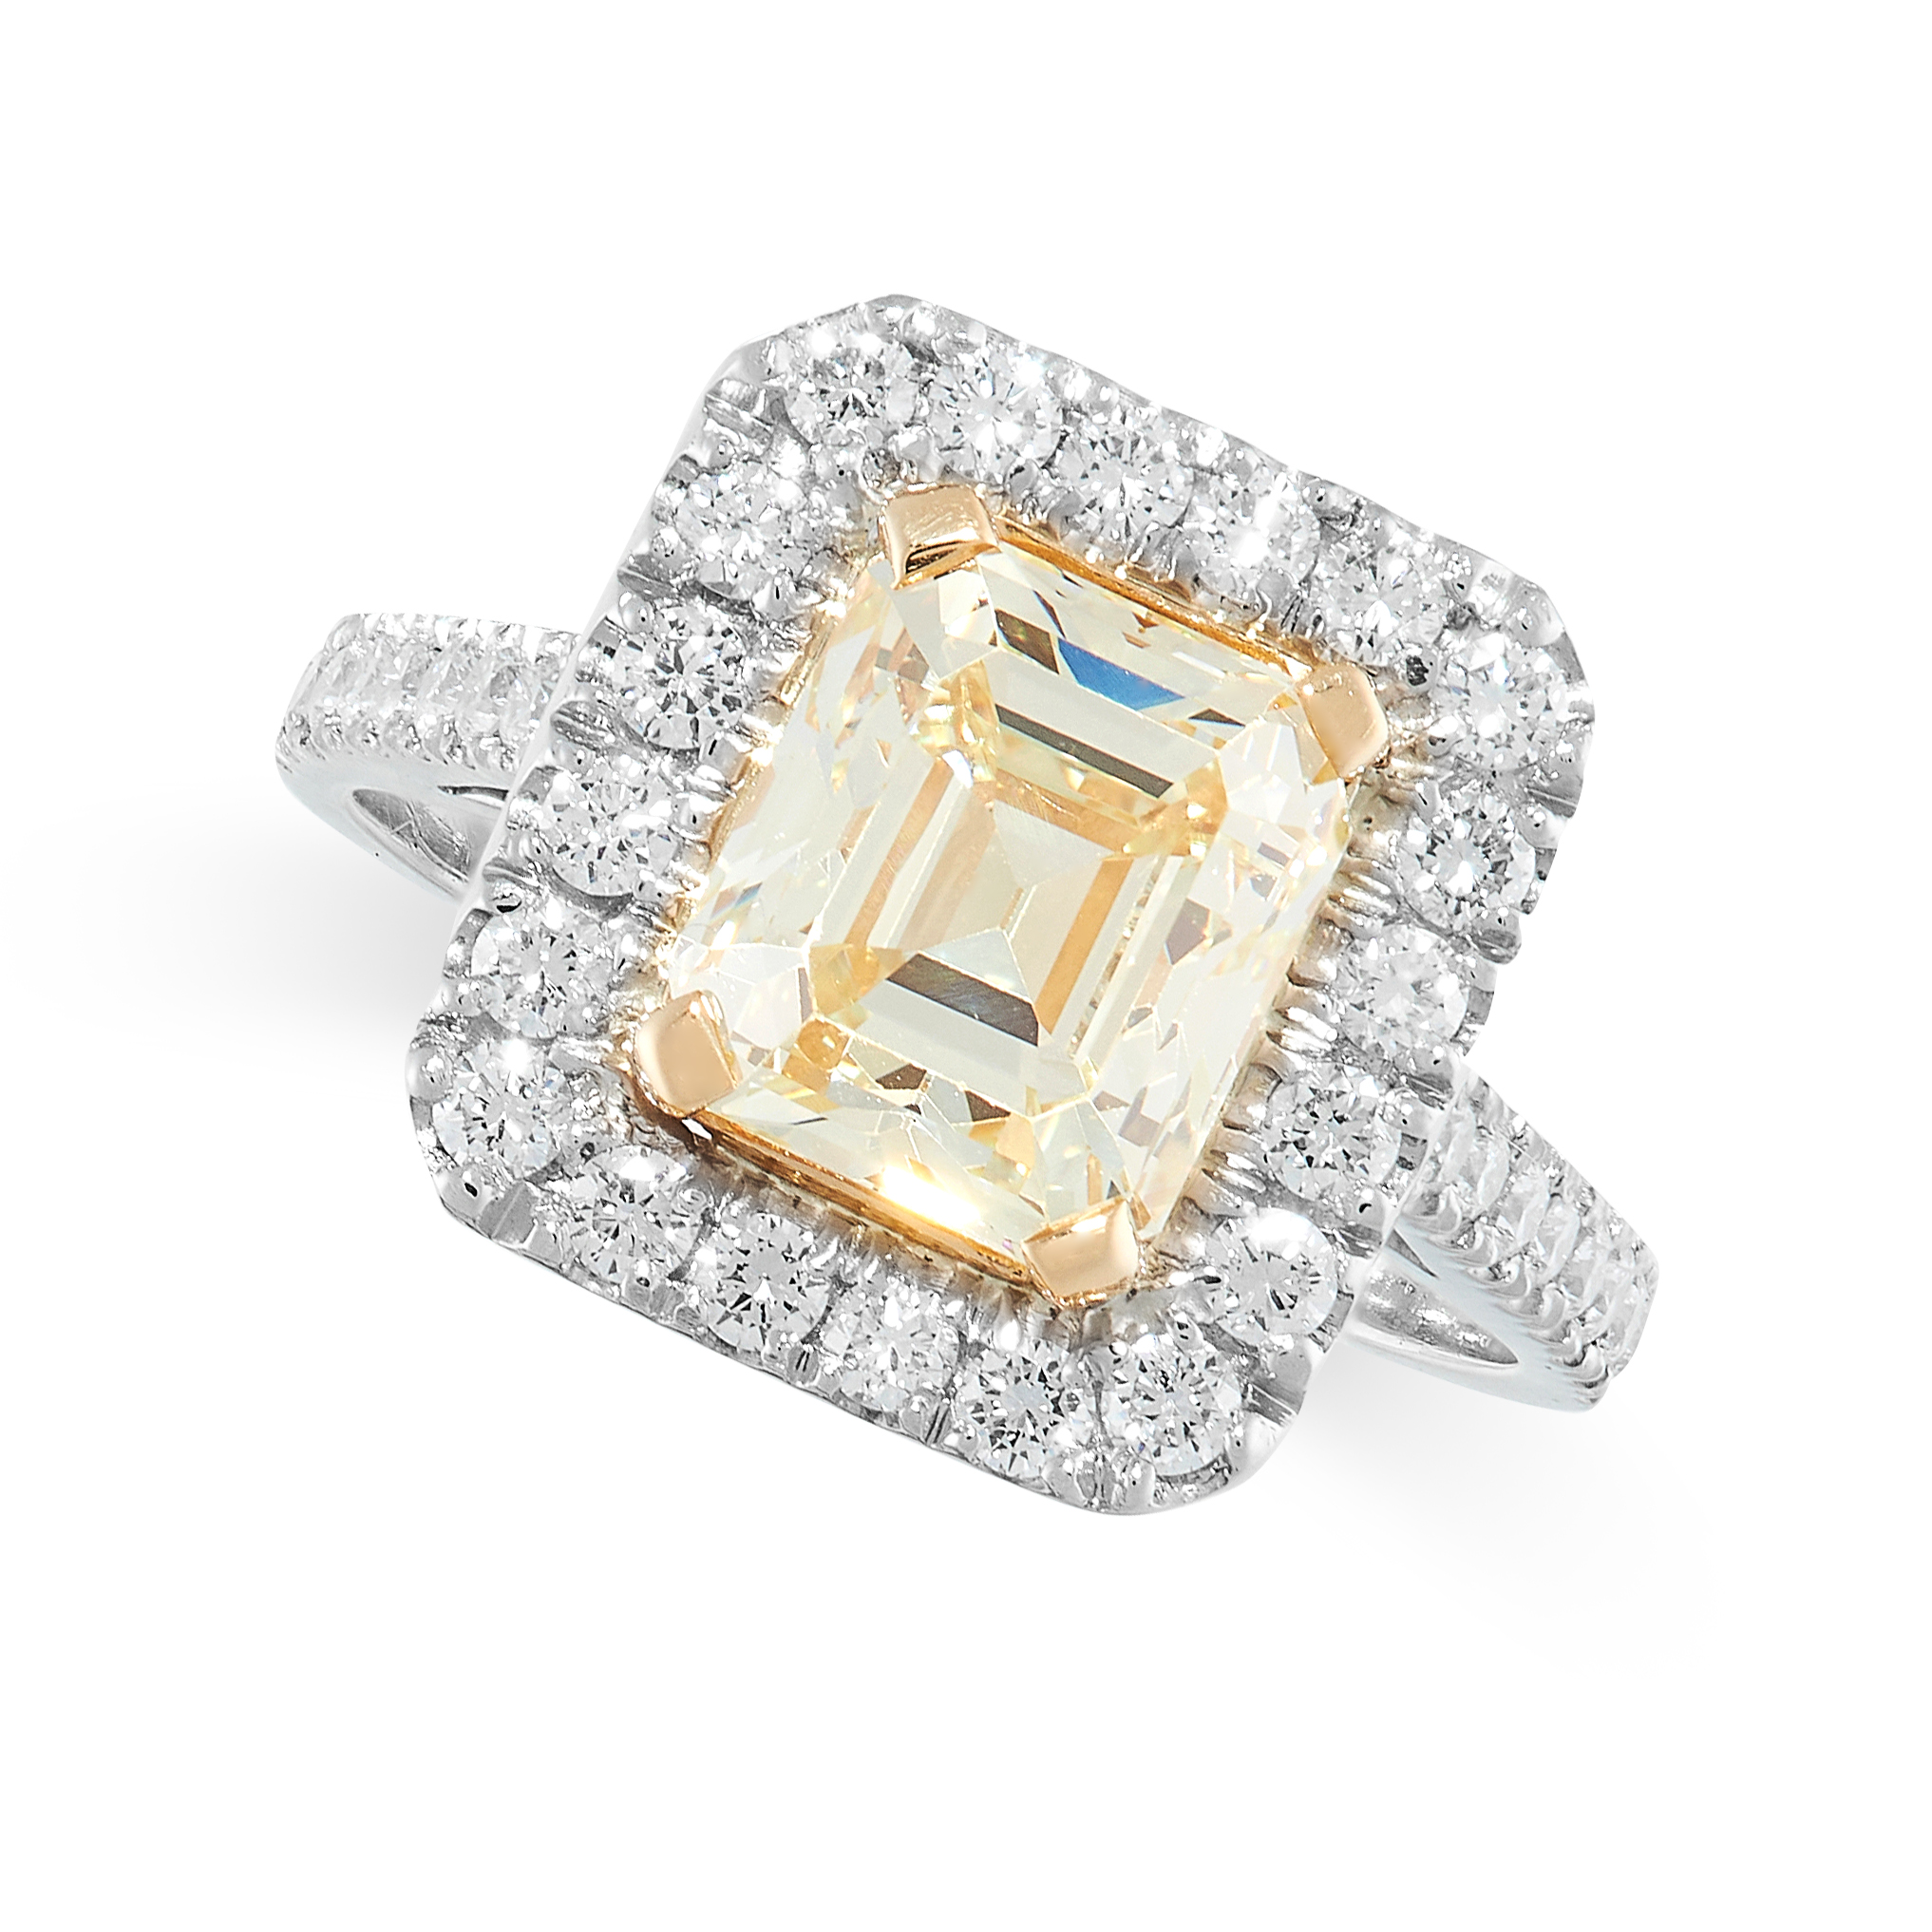 YELLOW DIAMOND AND DIAMOND RING claw set to the centre with an emerald cut yellow diamond of 3.05